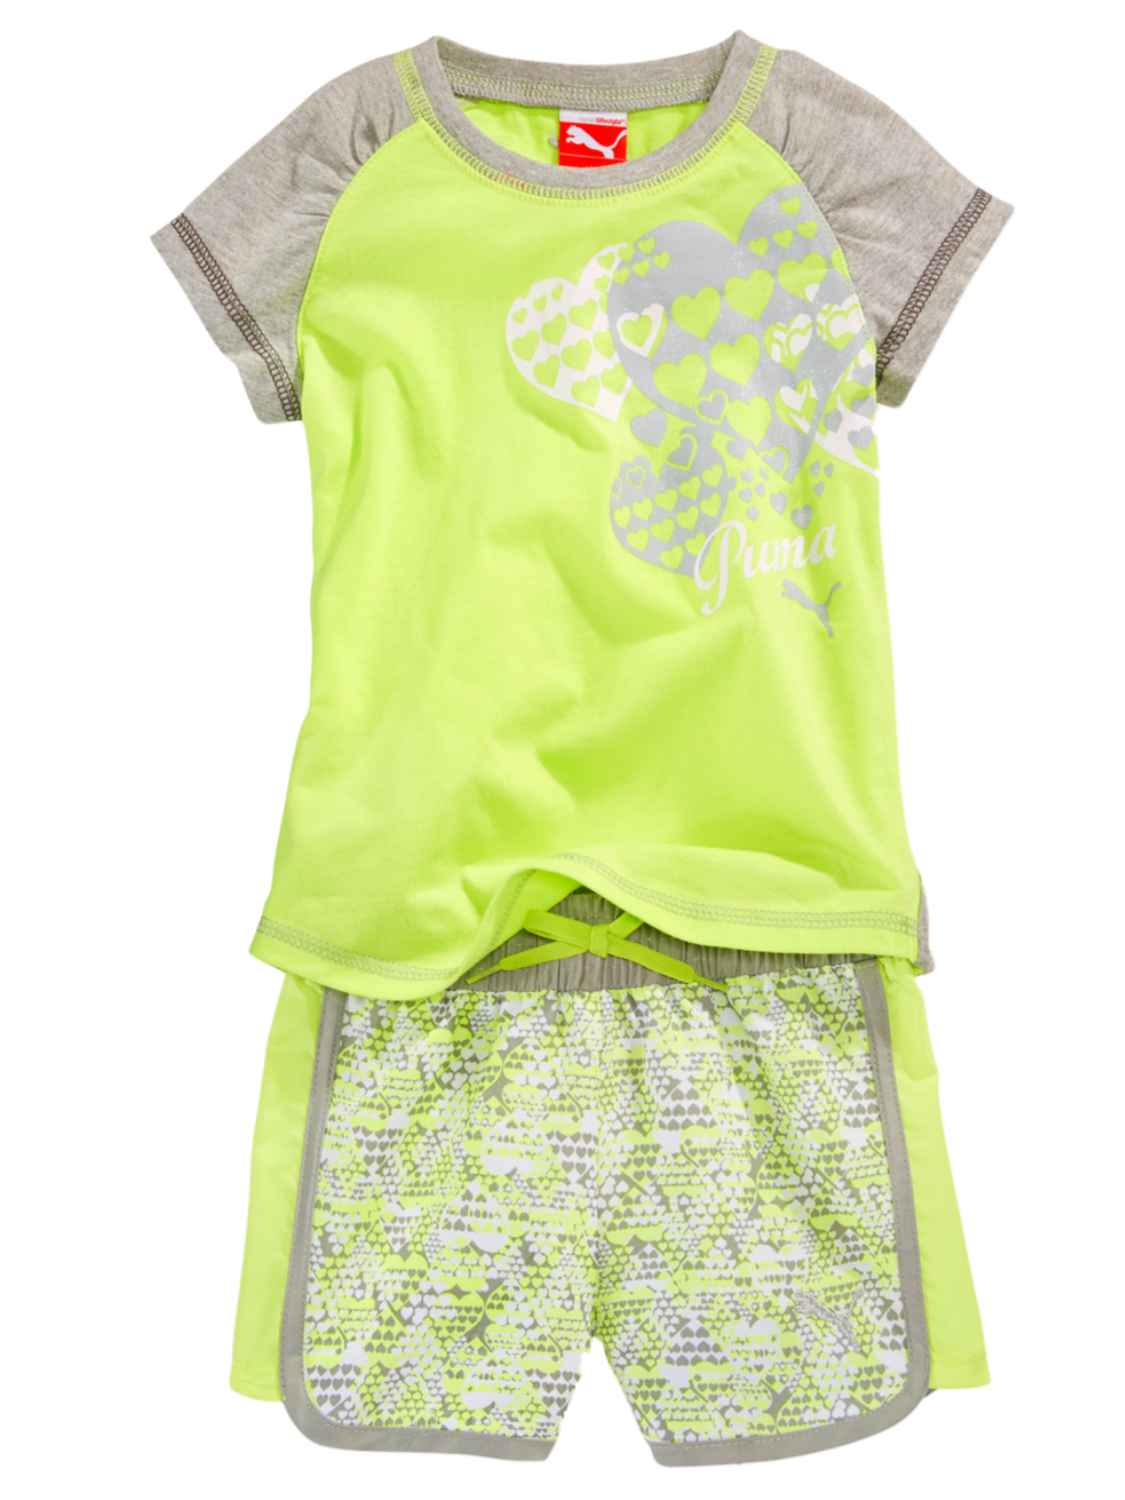 Puma Infant Girls Yellow Green Heart Print T-Shirt & Shorts Set Athletic Outfit